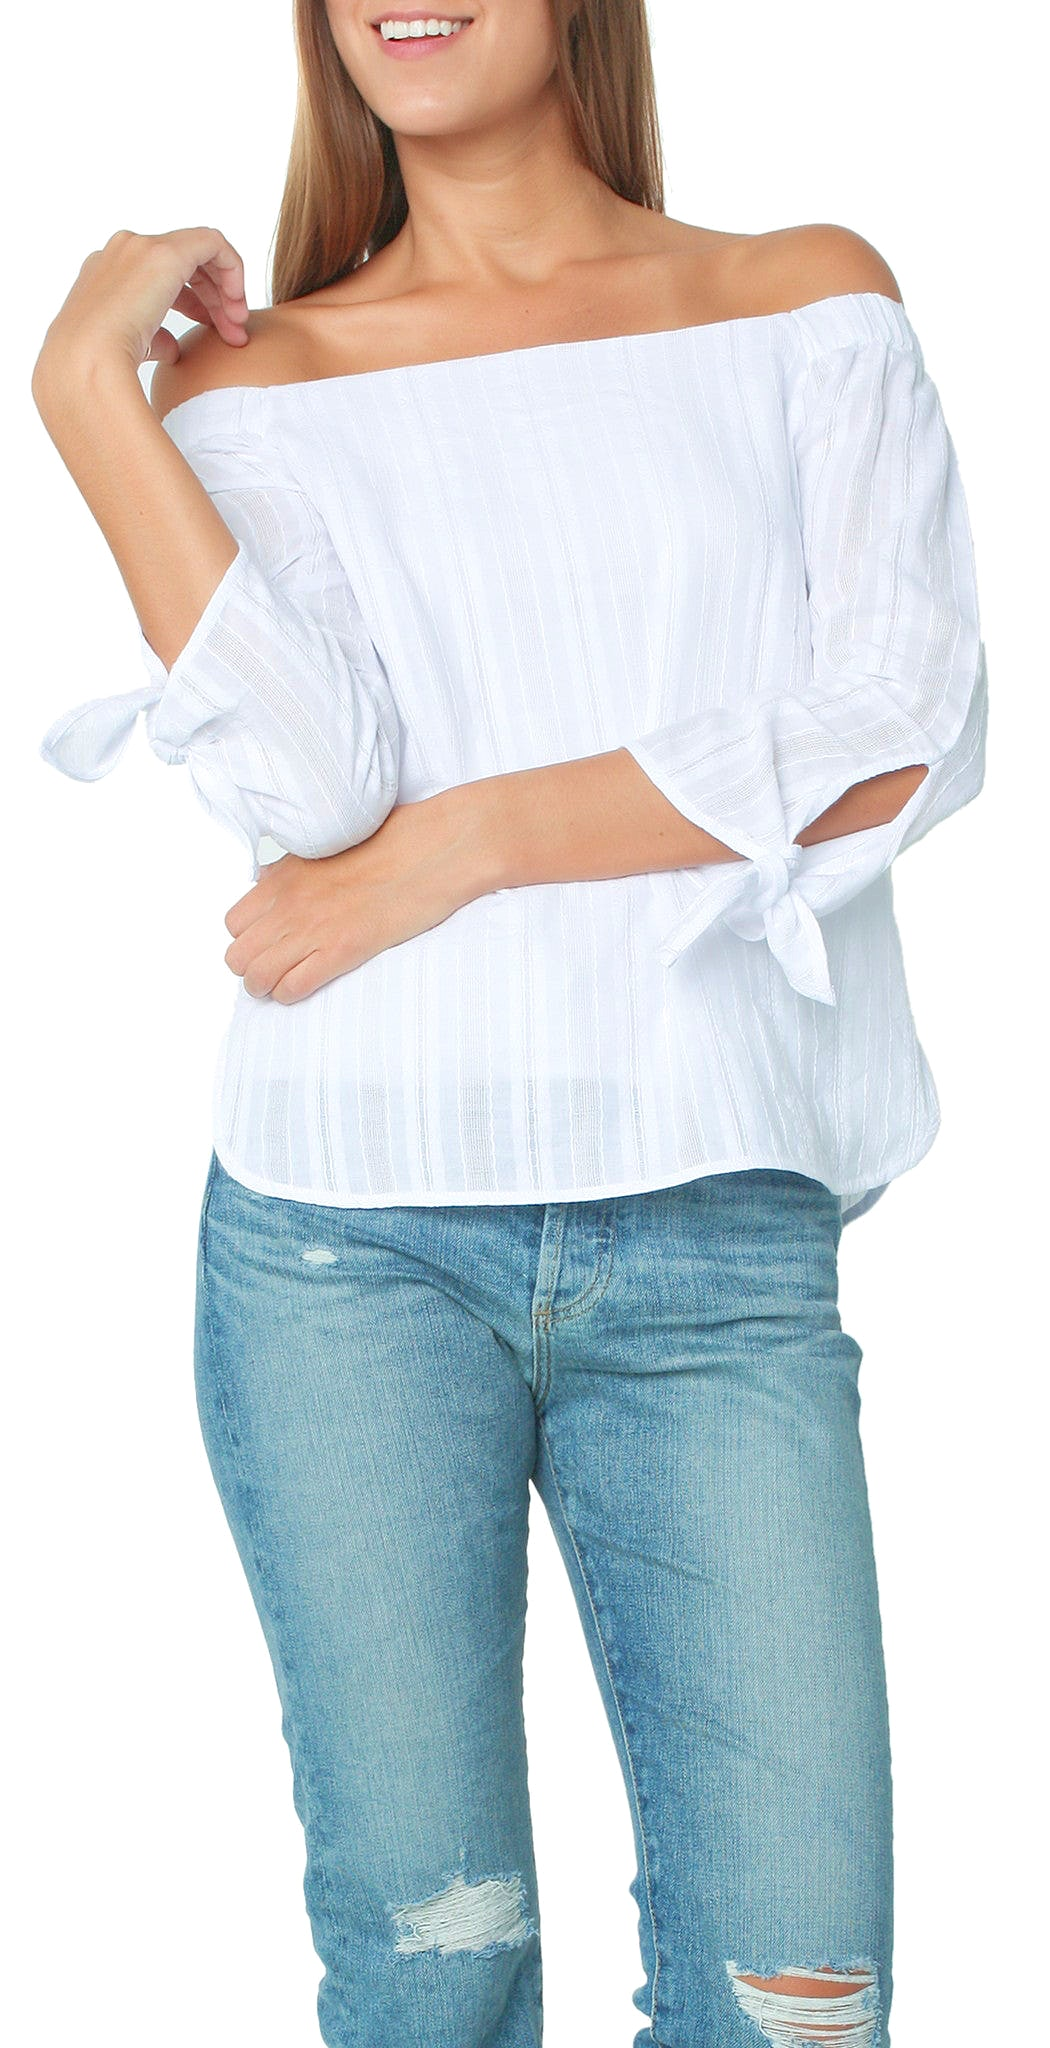 e7051bfc331 Bailey 44 Bailey 44. Tops, Blouses/Night Out. Yarrow Top White ...